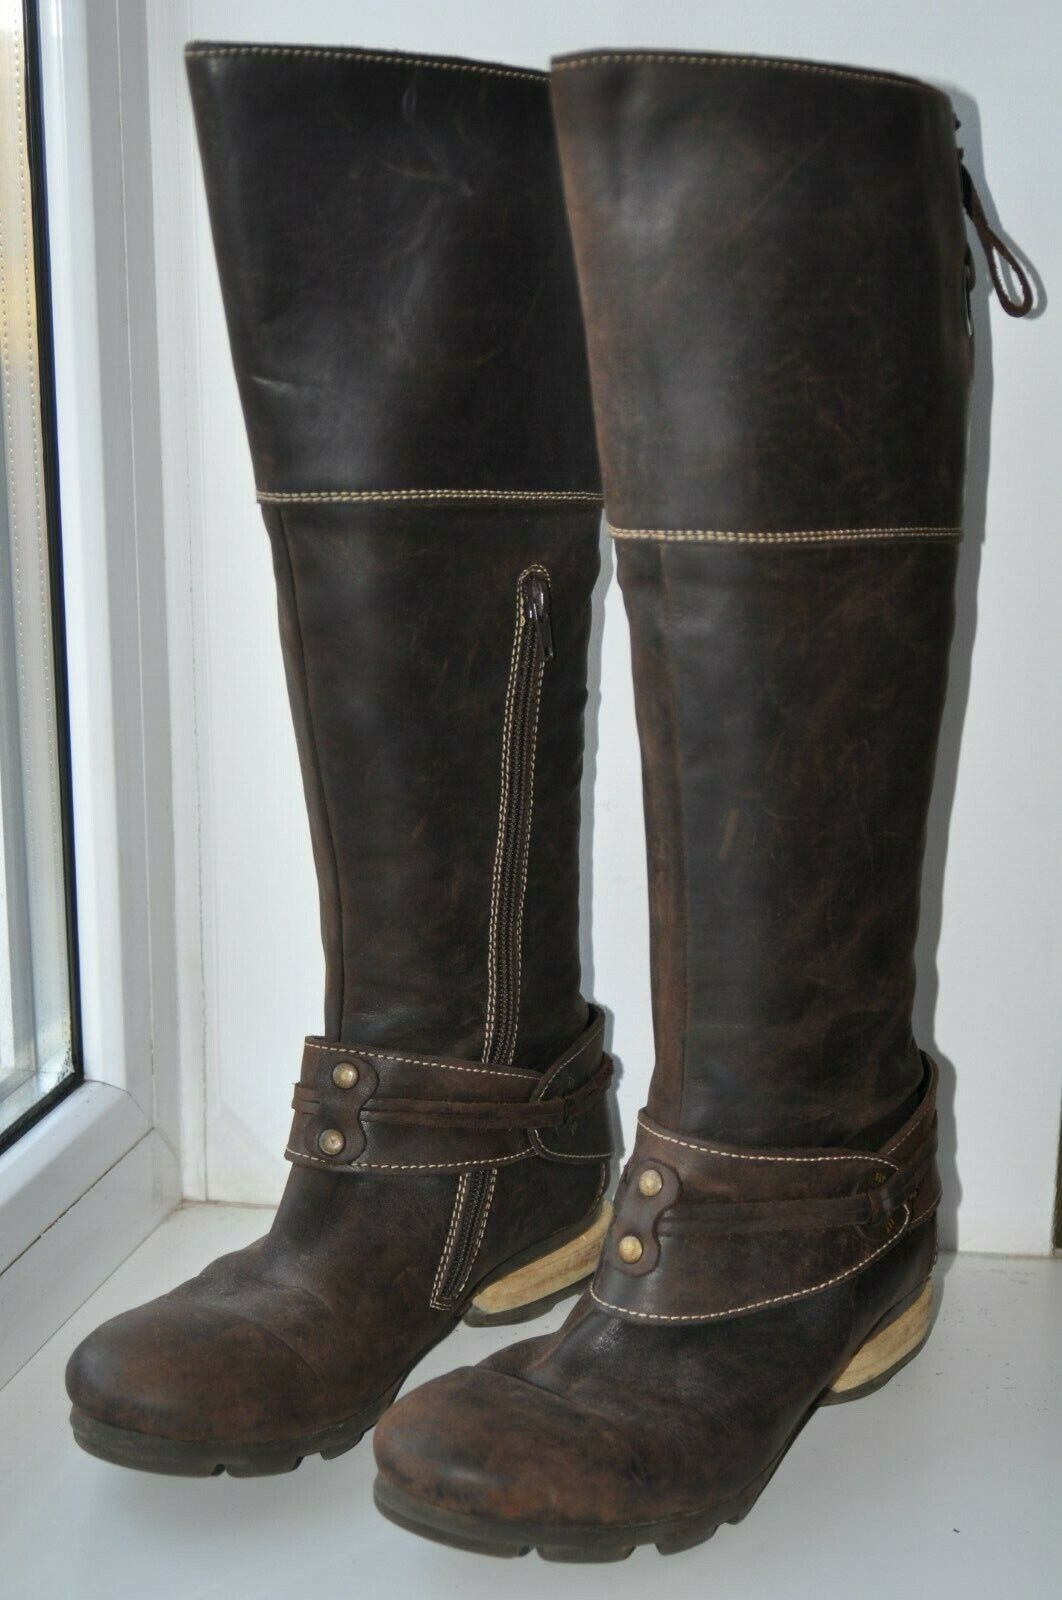 FLY LONDON KNEE HIGH REAL LEATHER braun RIDING Stiefel Größe UK6 EU39